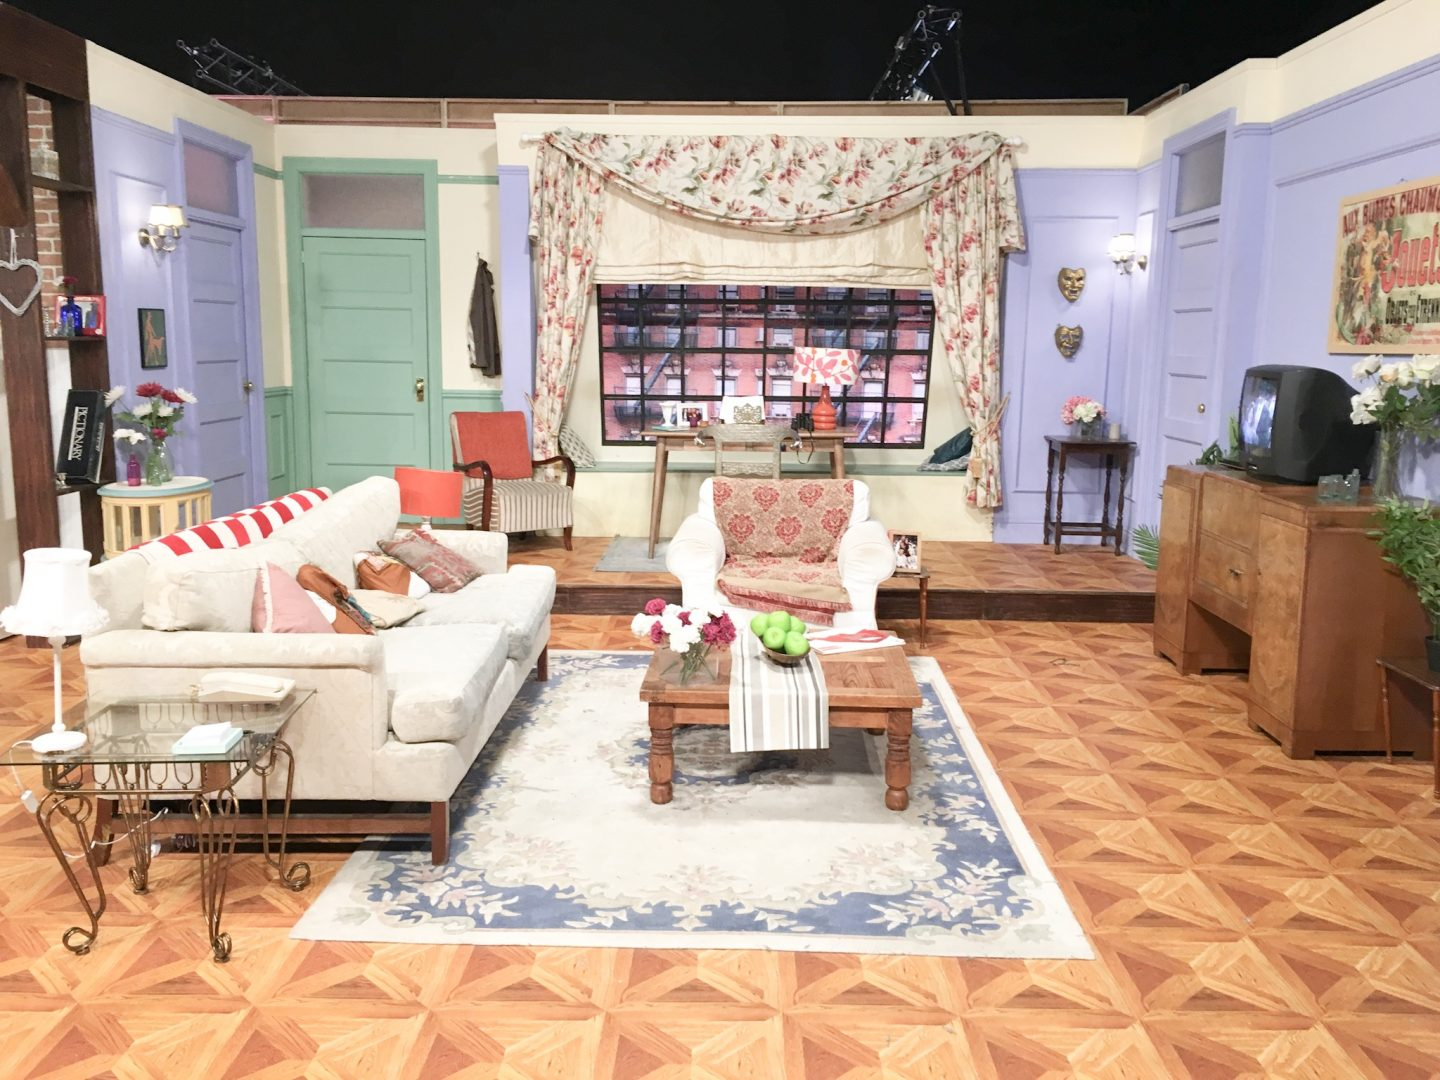 Monica's apartment at Friendsfest Bristol